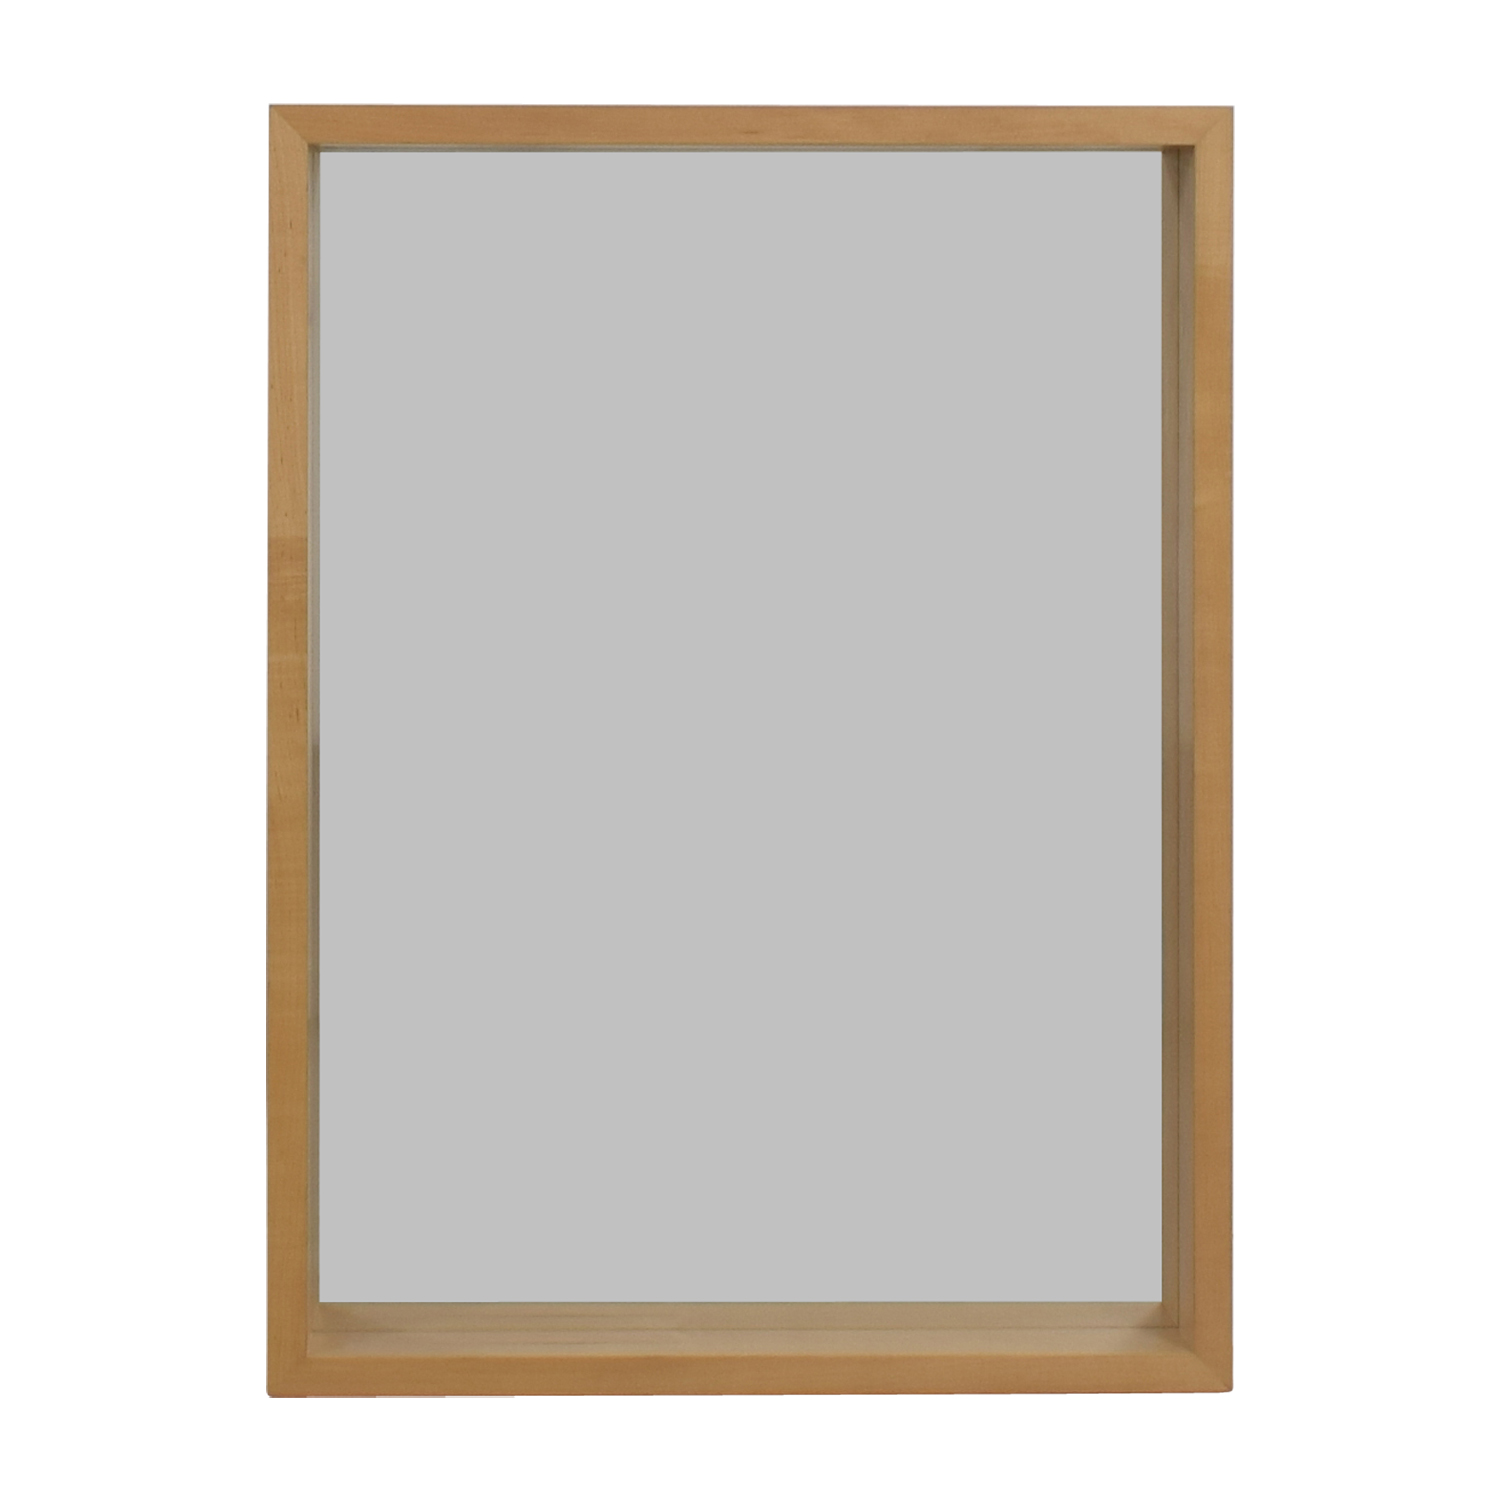 Wall Mirror Decor 33 Off Room And Board Room And Board Natural Loft Wall